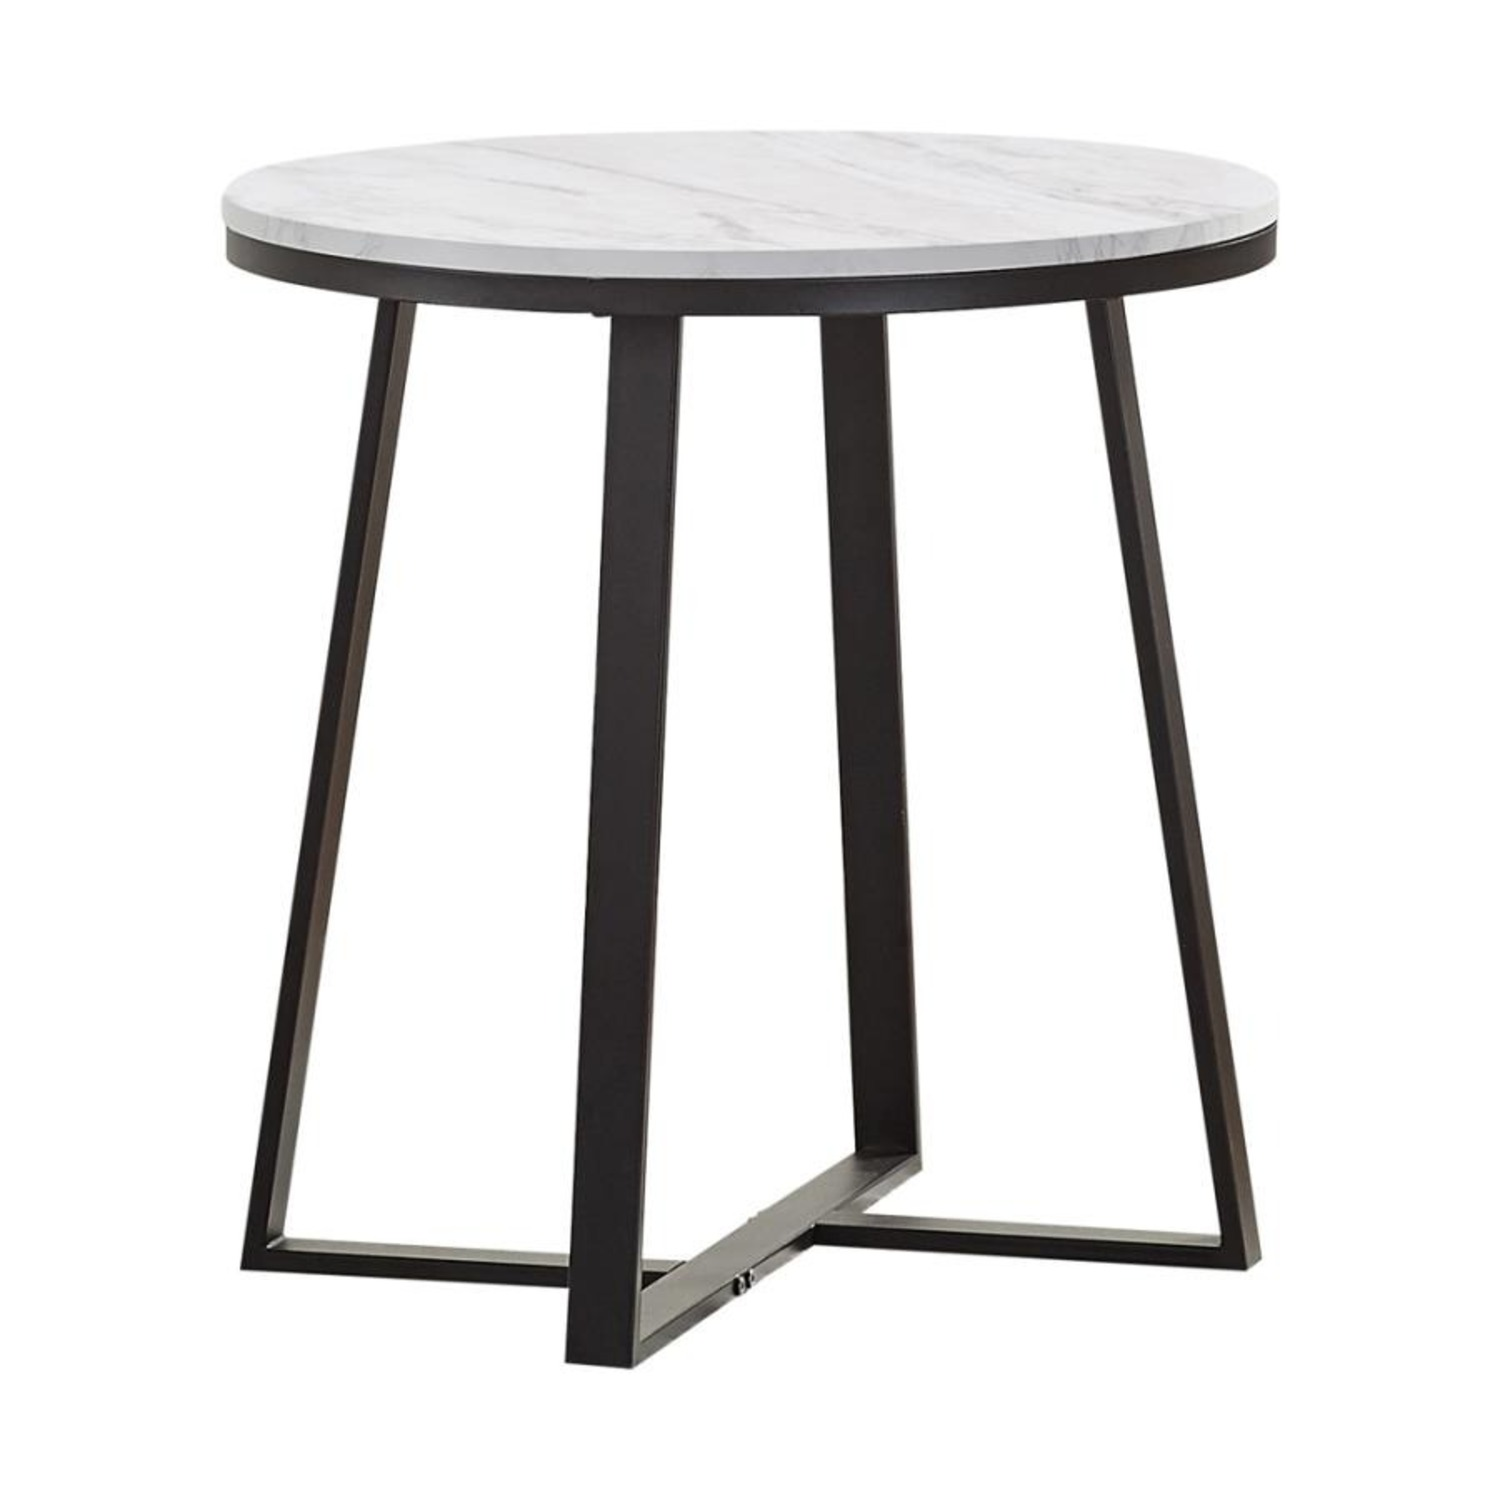 End Table In Faux Marble Top & Matte Black Finish - image-0